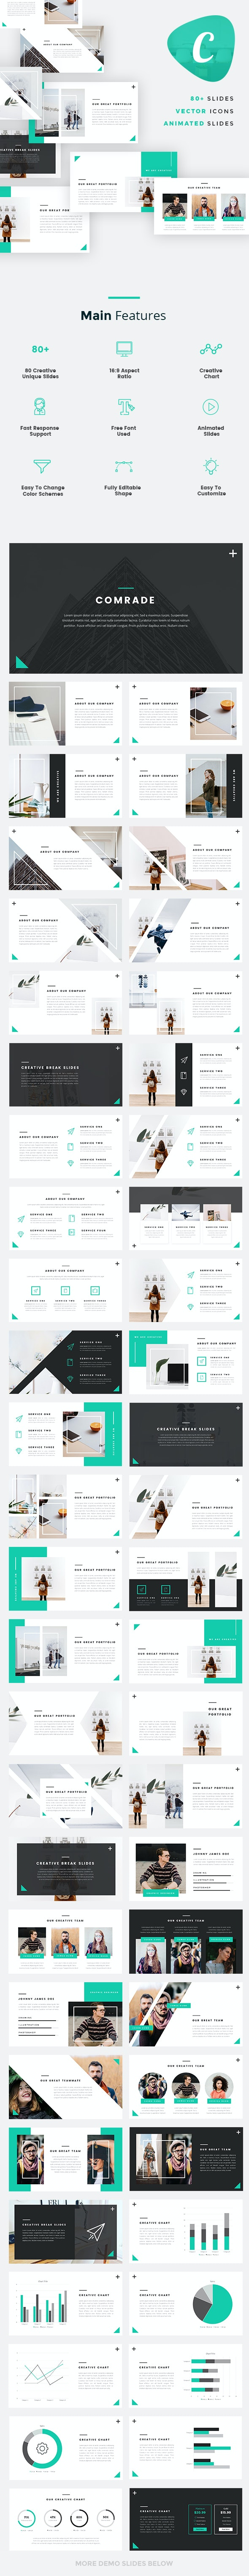 Comrade - Creative PowerPoint Template - Creative PowerPoint Templates